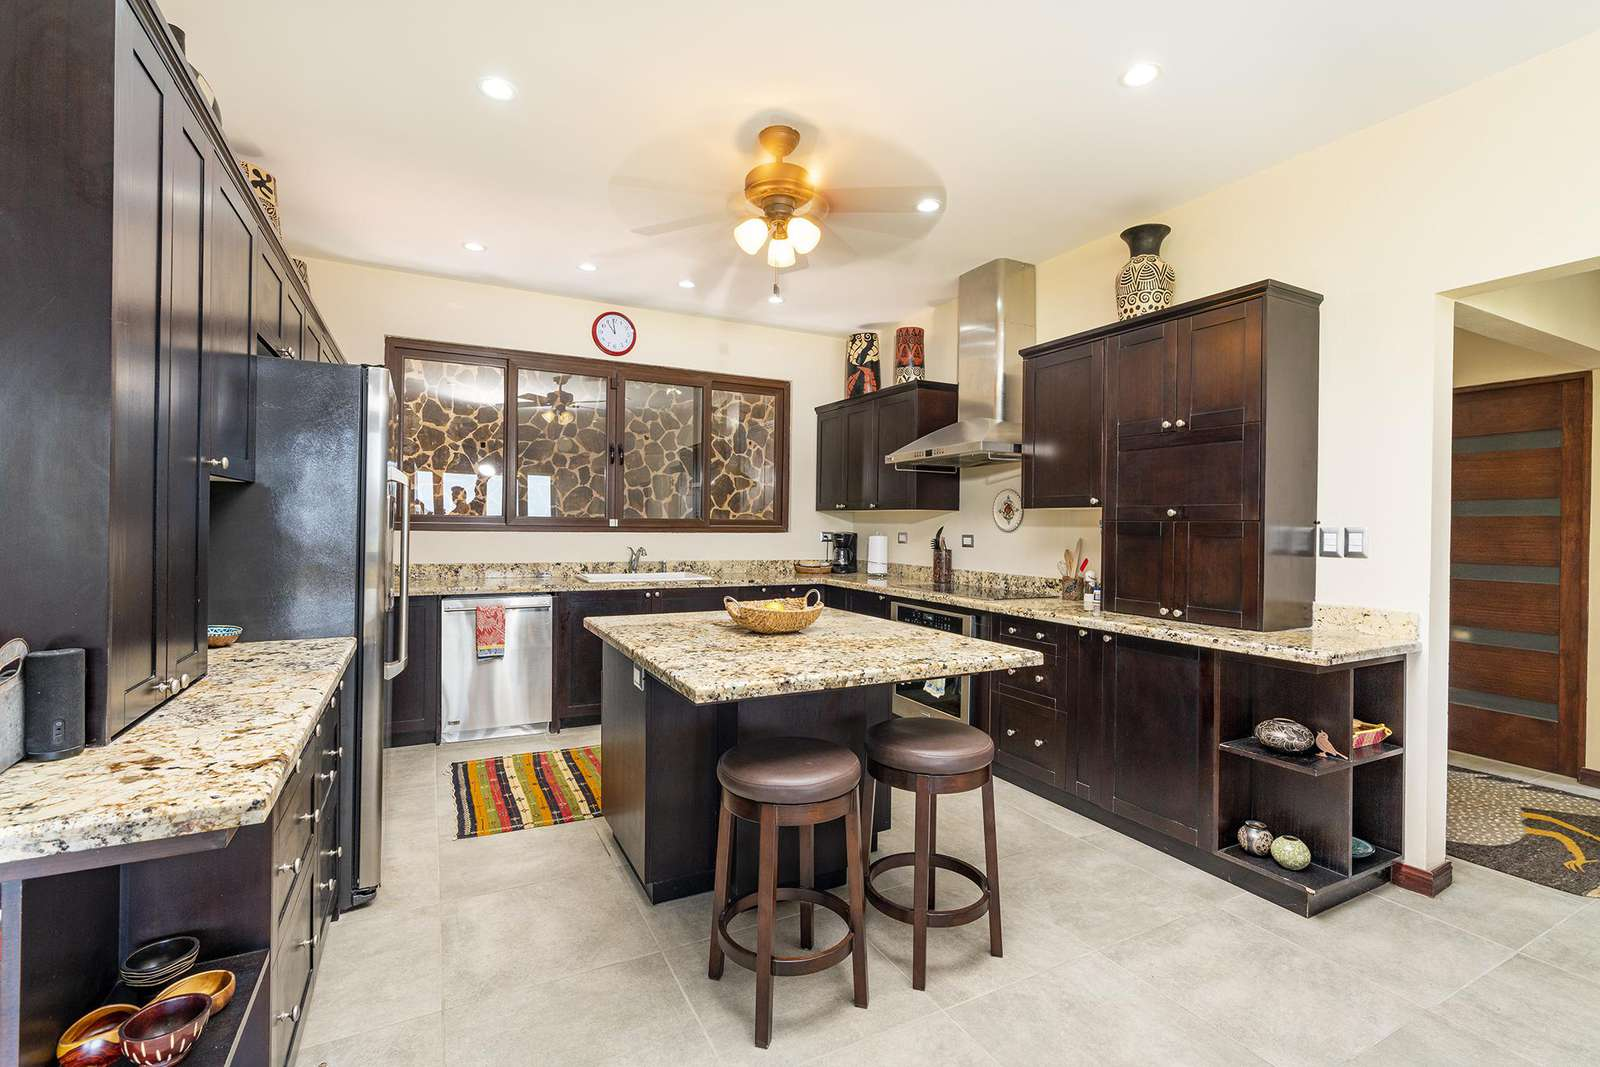 Gourmet kitchen, featuring wood cabinetry, granite countertops, stainless steel appliances, breakfast bar